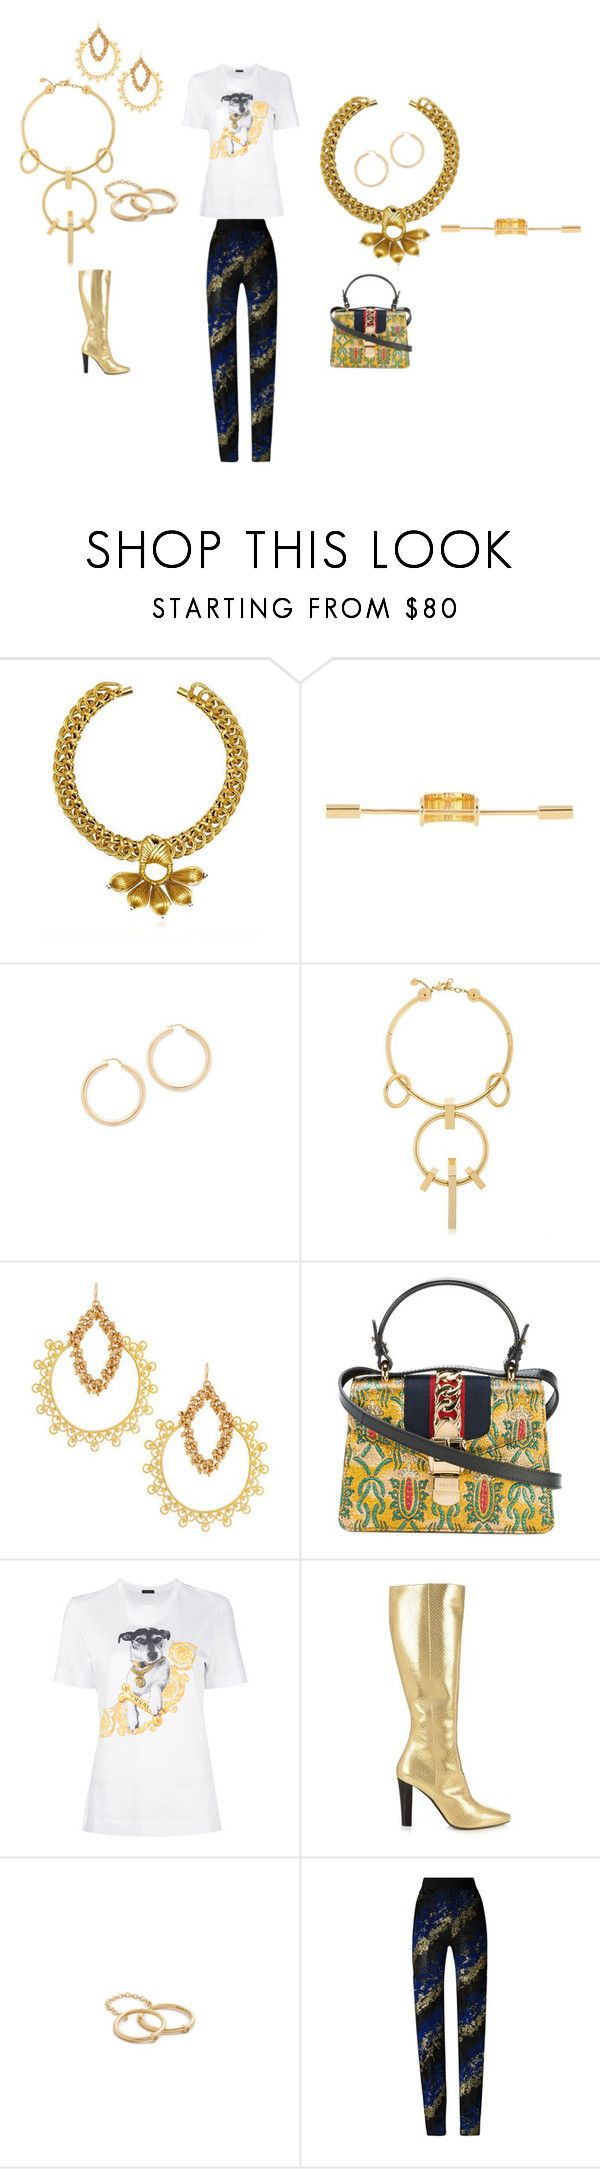 """BOOKMARK CEIL"" by ramakumari ❤ liked on Polyvore featuring VANINA, Balenciaga, Bronzallure, Schield Collection, Devon Leigh, Gucci, Versace, Yves Saint Laurent, Elizabeth and James and Antonio Berardi"